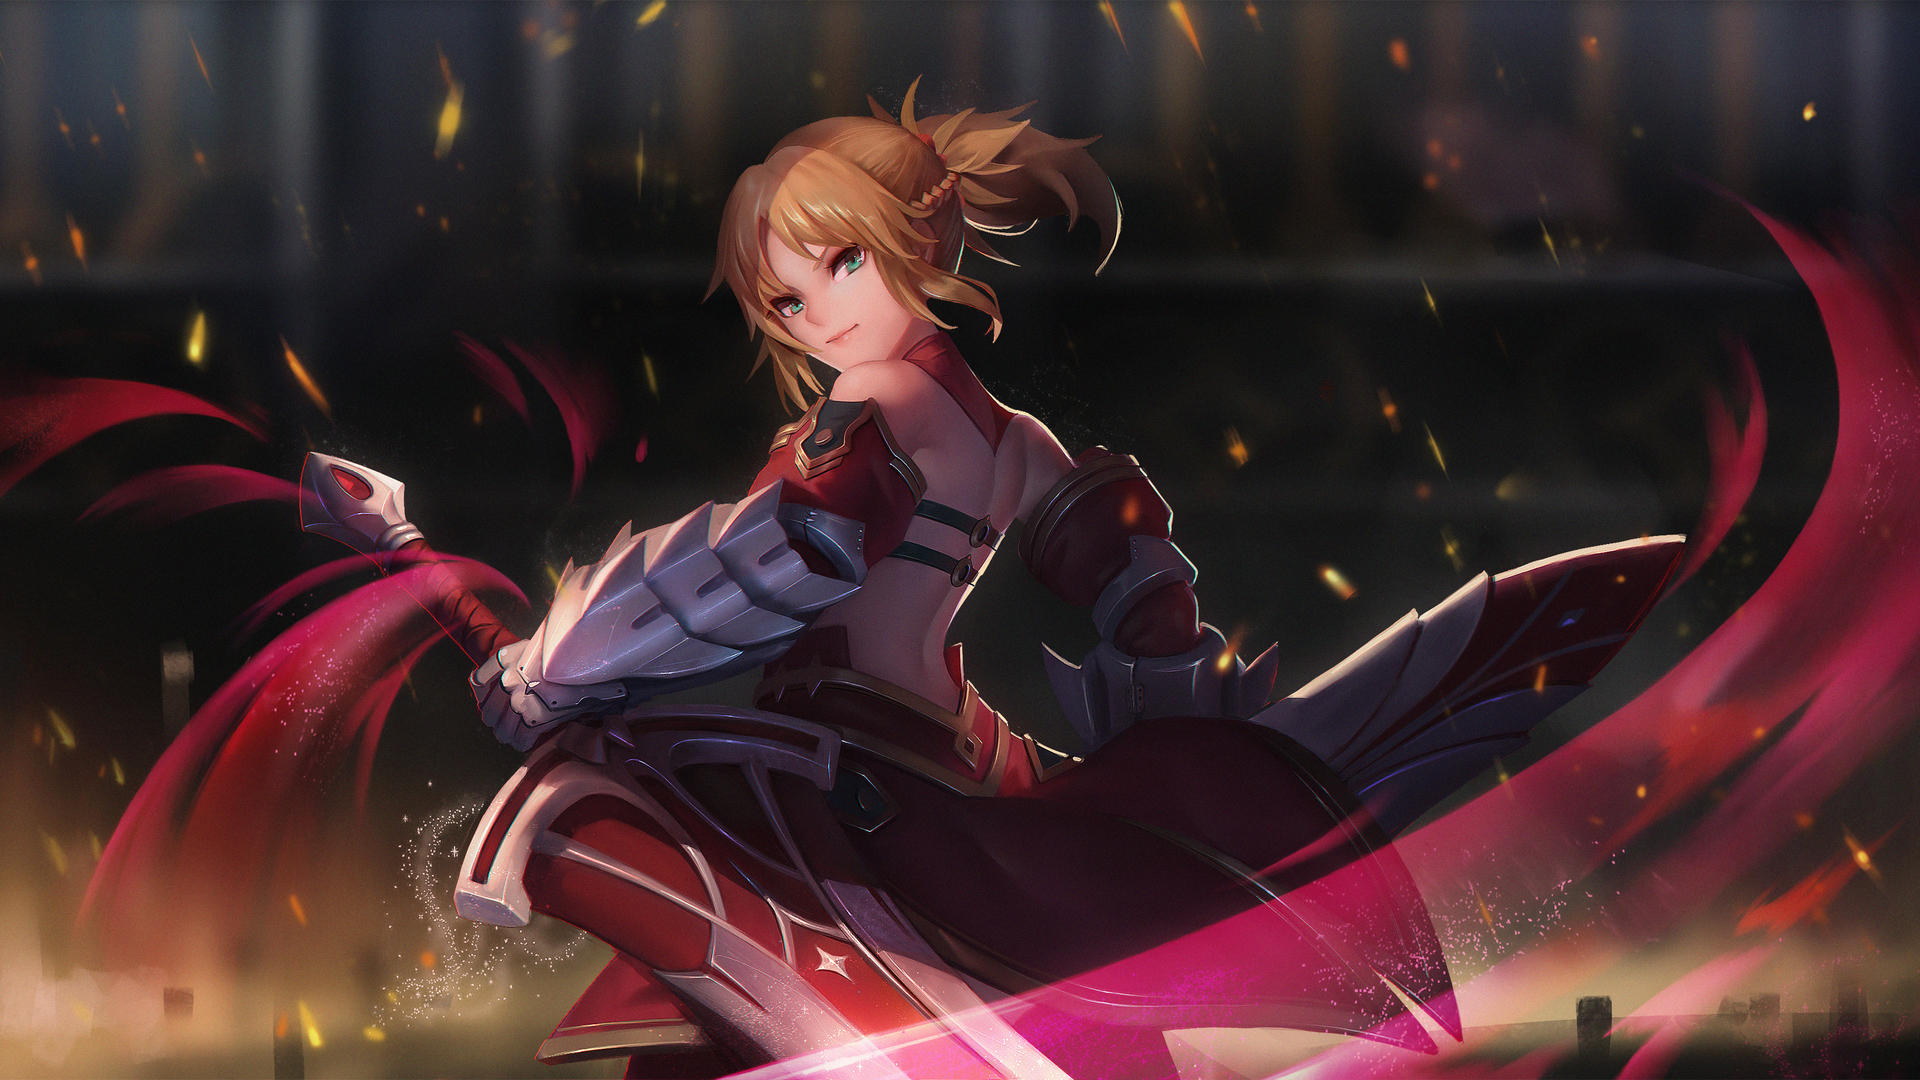 1920x1080 Saber Of Red Fate Grand Order Laptop Full Hd 1080p Hd 4k